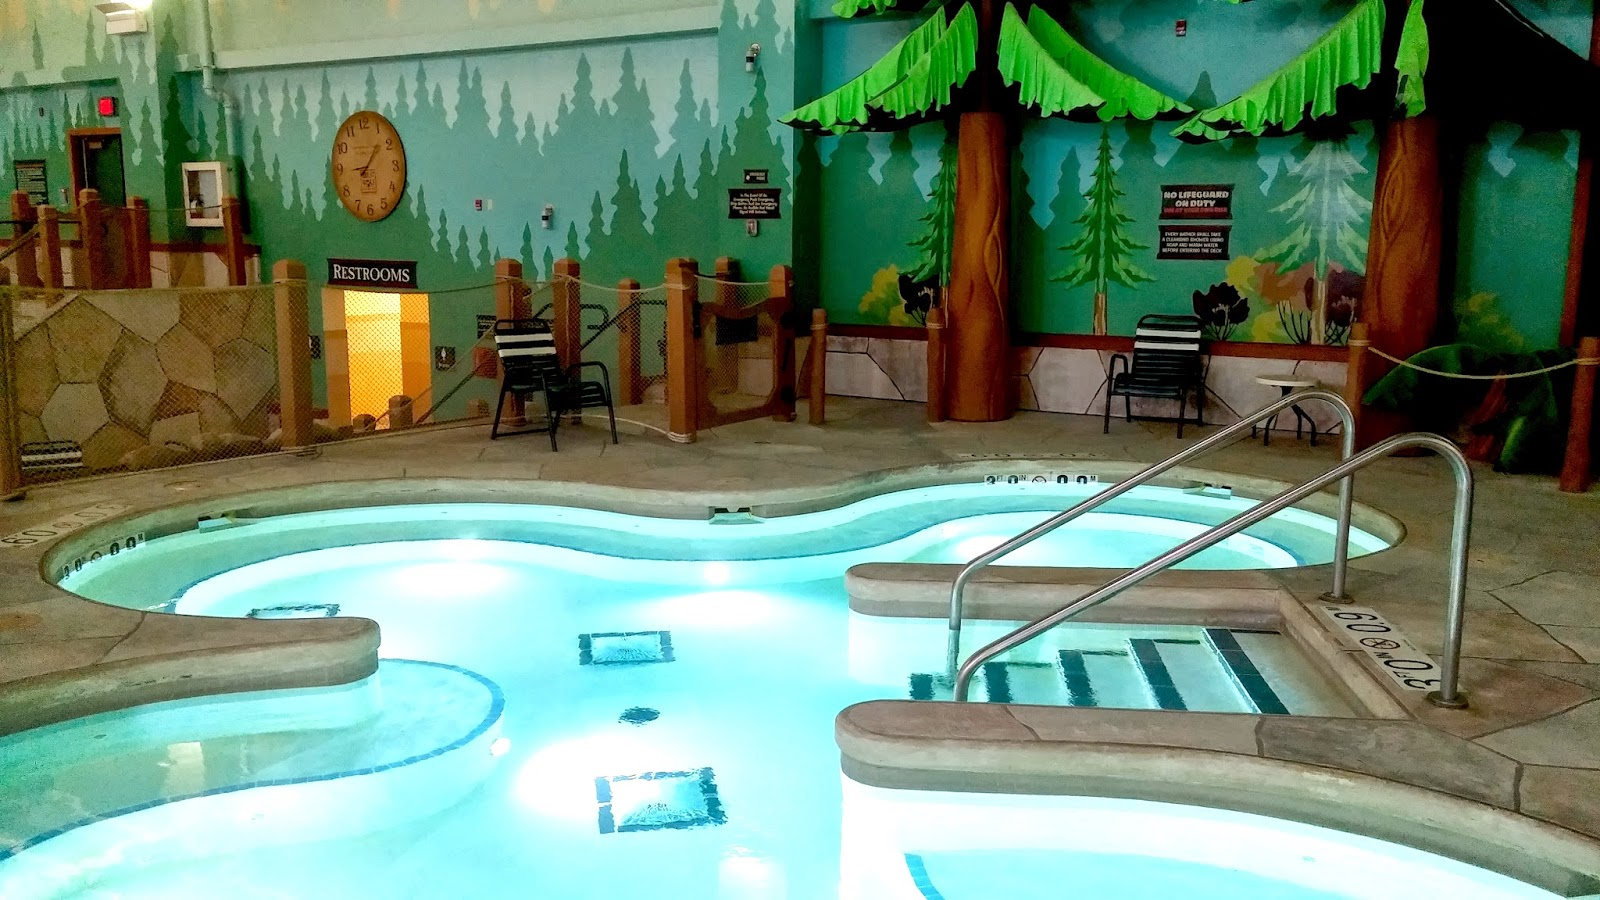 Great wolf lodge niagara falls water park for Pool spa show niagara falls